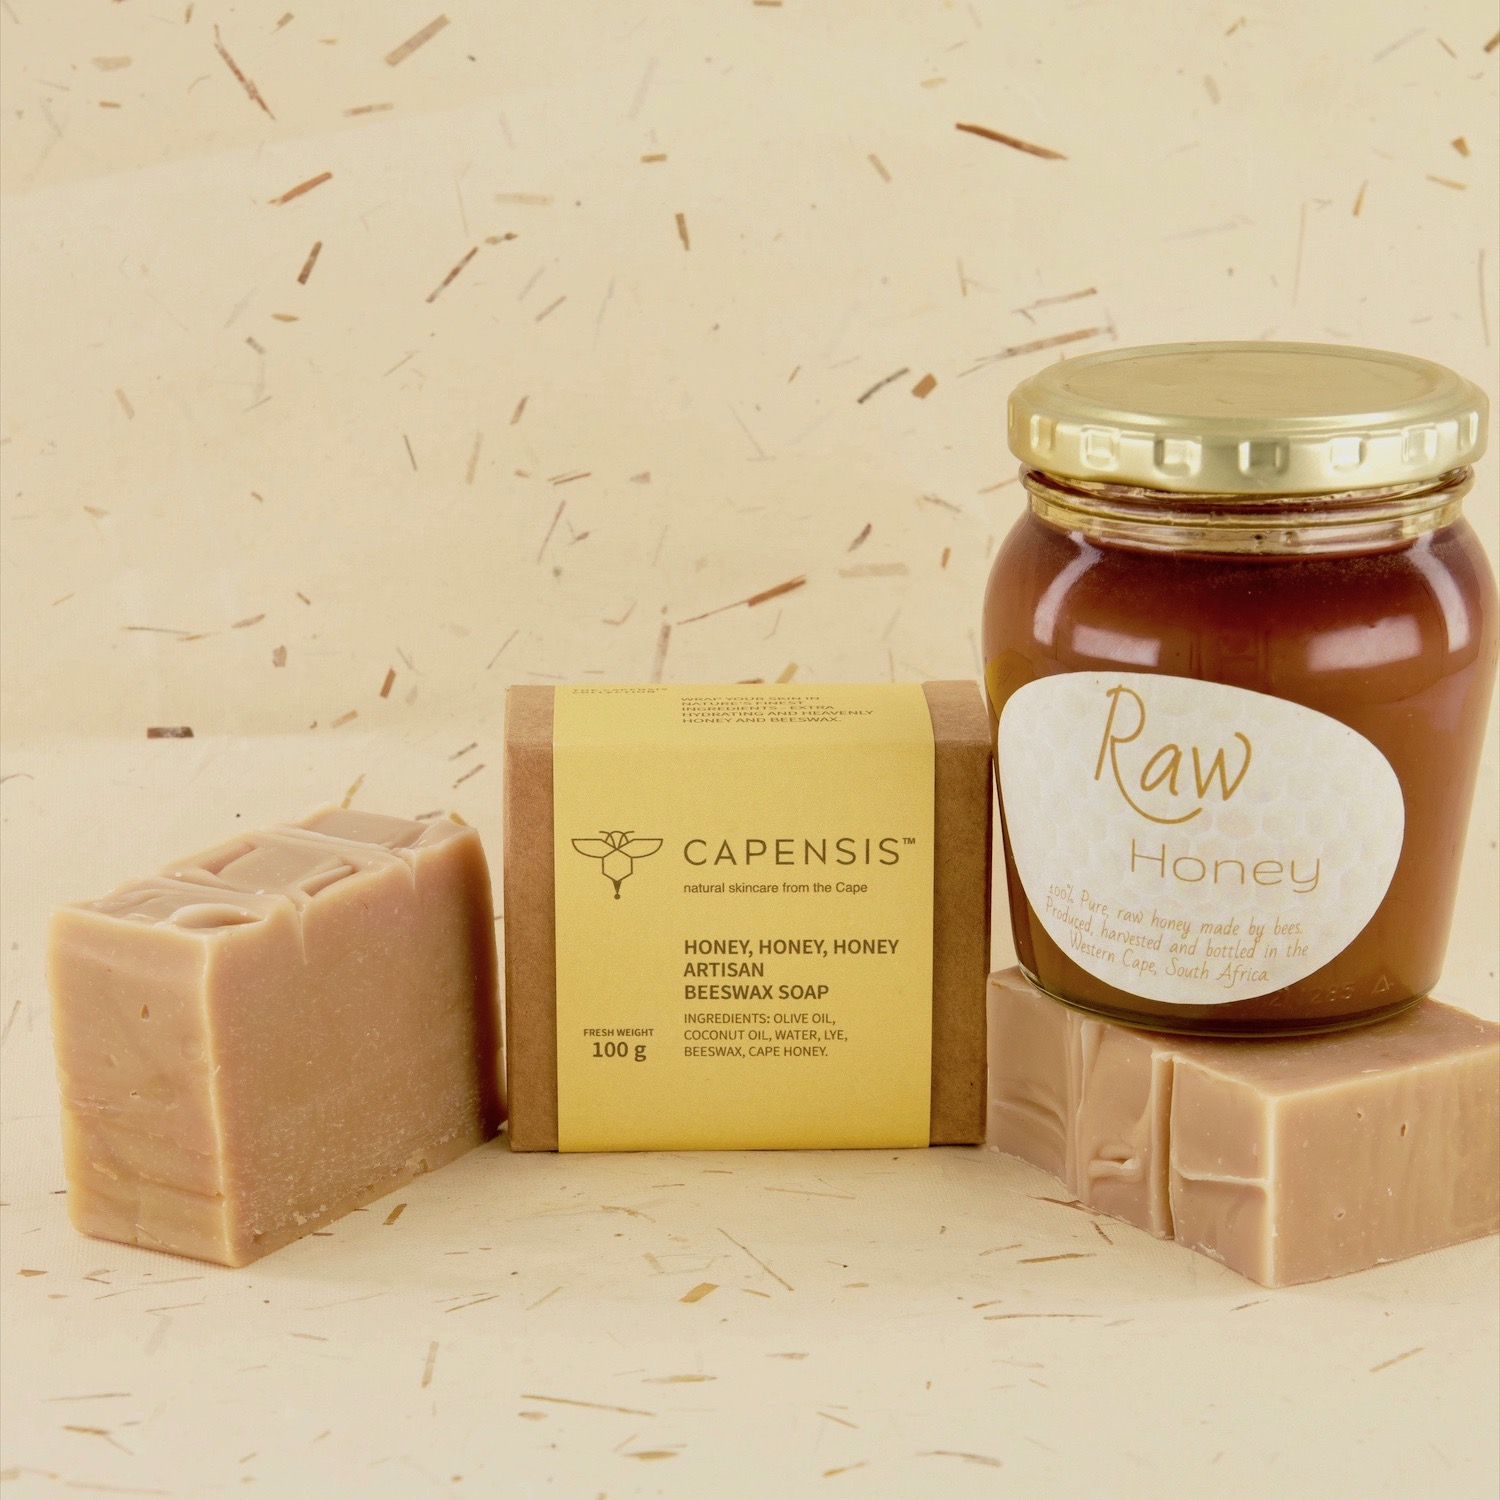 Beeswax & Honey to wrap your skin in nature's finest ingredients. Extra hydrating & heavenly.  Filled with delicious honey which is naturally antibacterial and great for acne treatment and prevention. Honey is full of antioxidants, making it wonderful for slowing down ageing. Honey also helps with a complexion boost: it is extremely moisturising and soothing, so it helps create a honey-glow for your skin. Honey has been known to inhibit growth of bacteria that may affect the skin and cause skin conditions.       100g  Compostable packaging      Capensis artisanal naturalsoaps are handmade in Cape Town, South Africa,with beeswax and honey from the Cape Honeybee.  Beeswax is PROTECTIVE - when applied to the skin, beeswax forms a protective barrier that helps shield your skin from environmental assaults, while also holding in moisture and reducing dryness (but it won't clog your pores). It's a HUMECTANT, helping to keep skin hydrated over time. Beeswax is an excellent source of VITAMIN A - which softens and rehydrate the skin as well as aiding in the healthy development of cellular reconstruction. By acting as a protective, breathable layer on the skin's surface, beeswax helps to lock in moisture for soft, supple, hydrated skin. It also carries antiviral, anti-inflammatory, and antibacterial properties that are essential in fighting chapped and damaged skin as well as acne-prone skin.   Continue shopping - viewall products